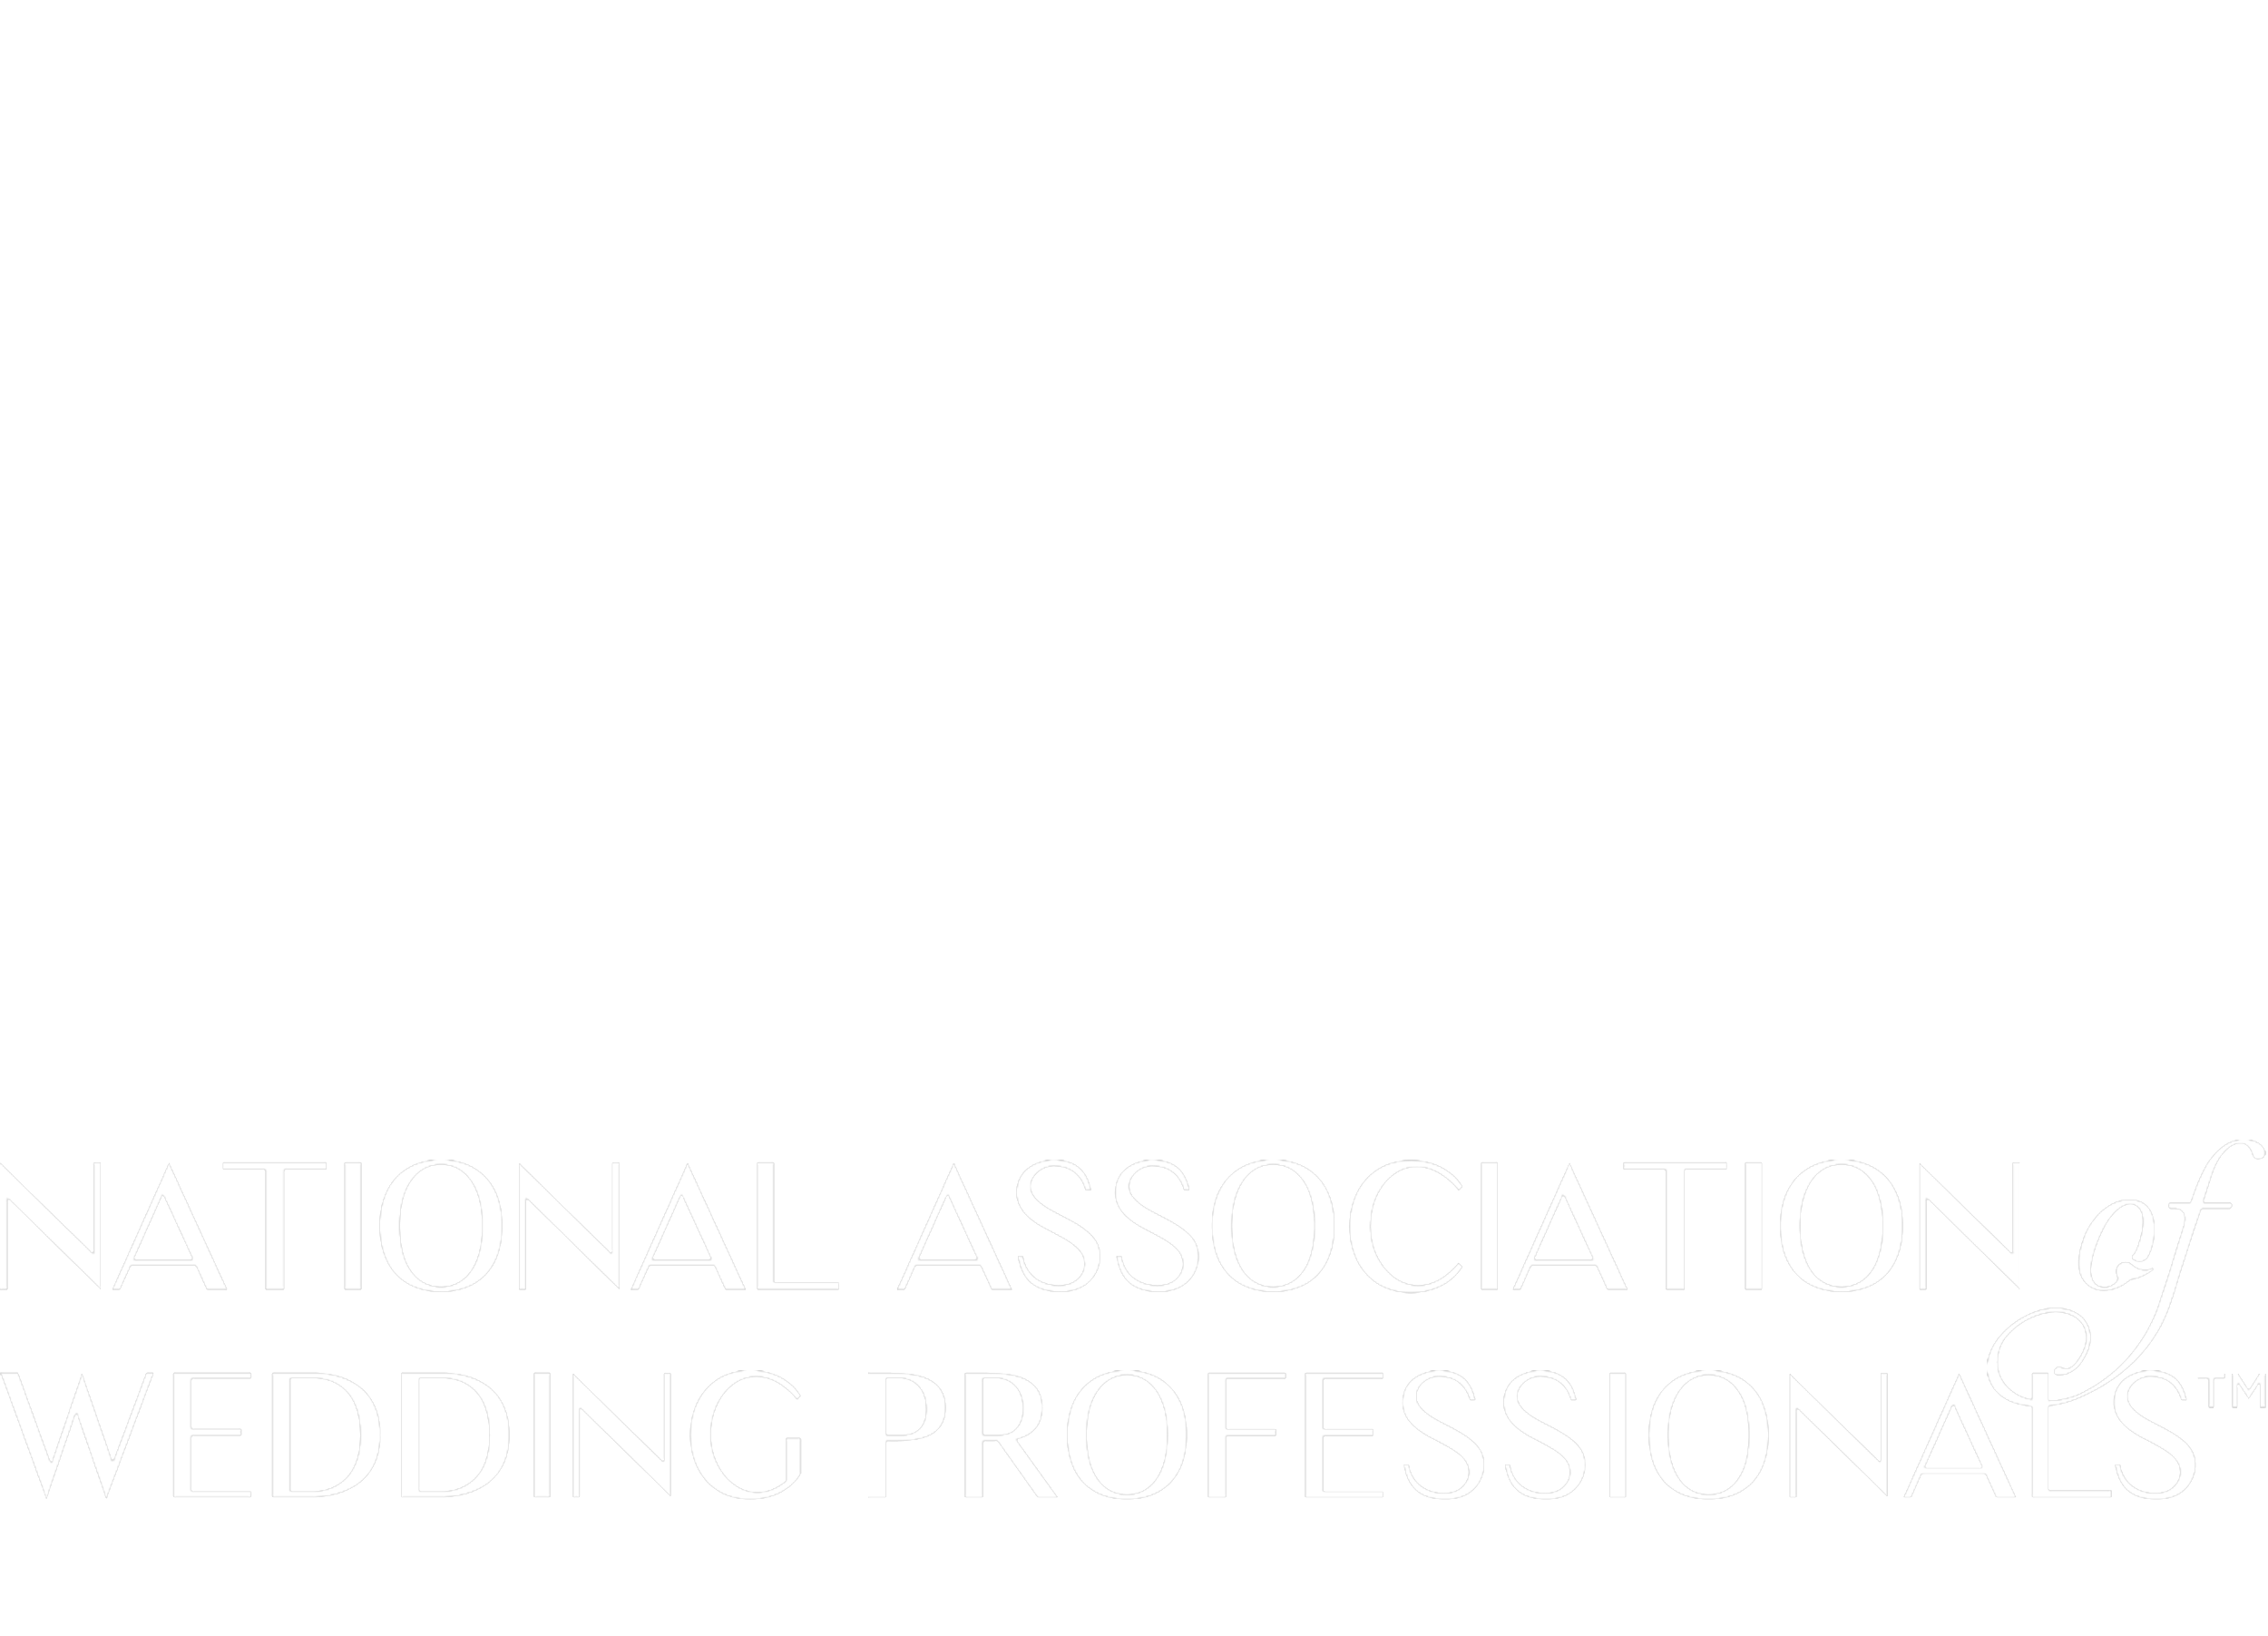 NAWP Stacked White with Transparent Background.png